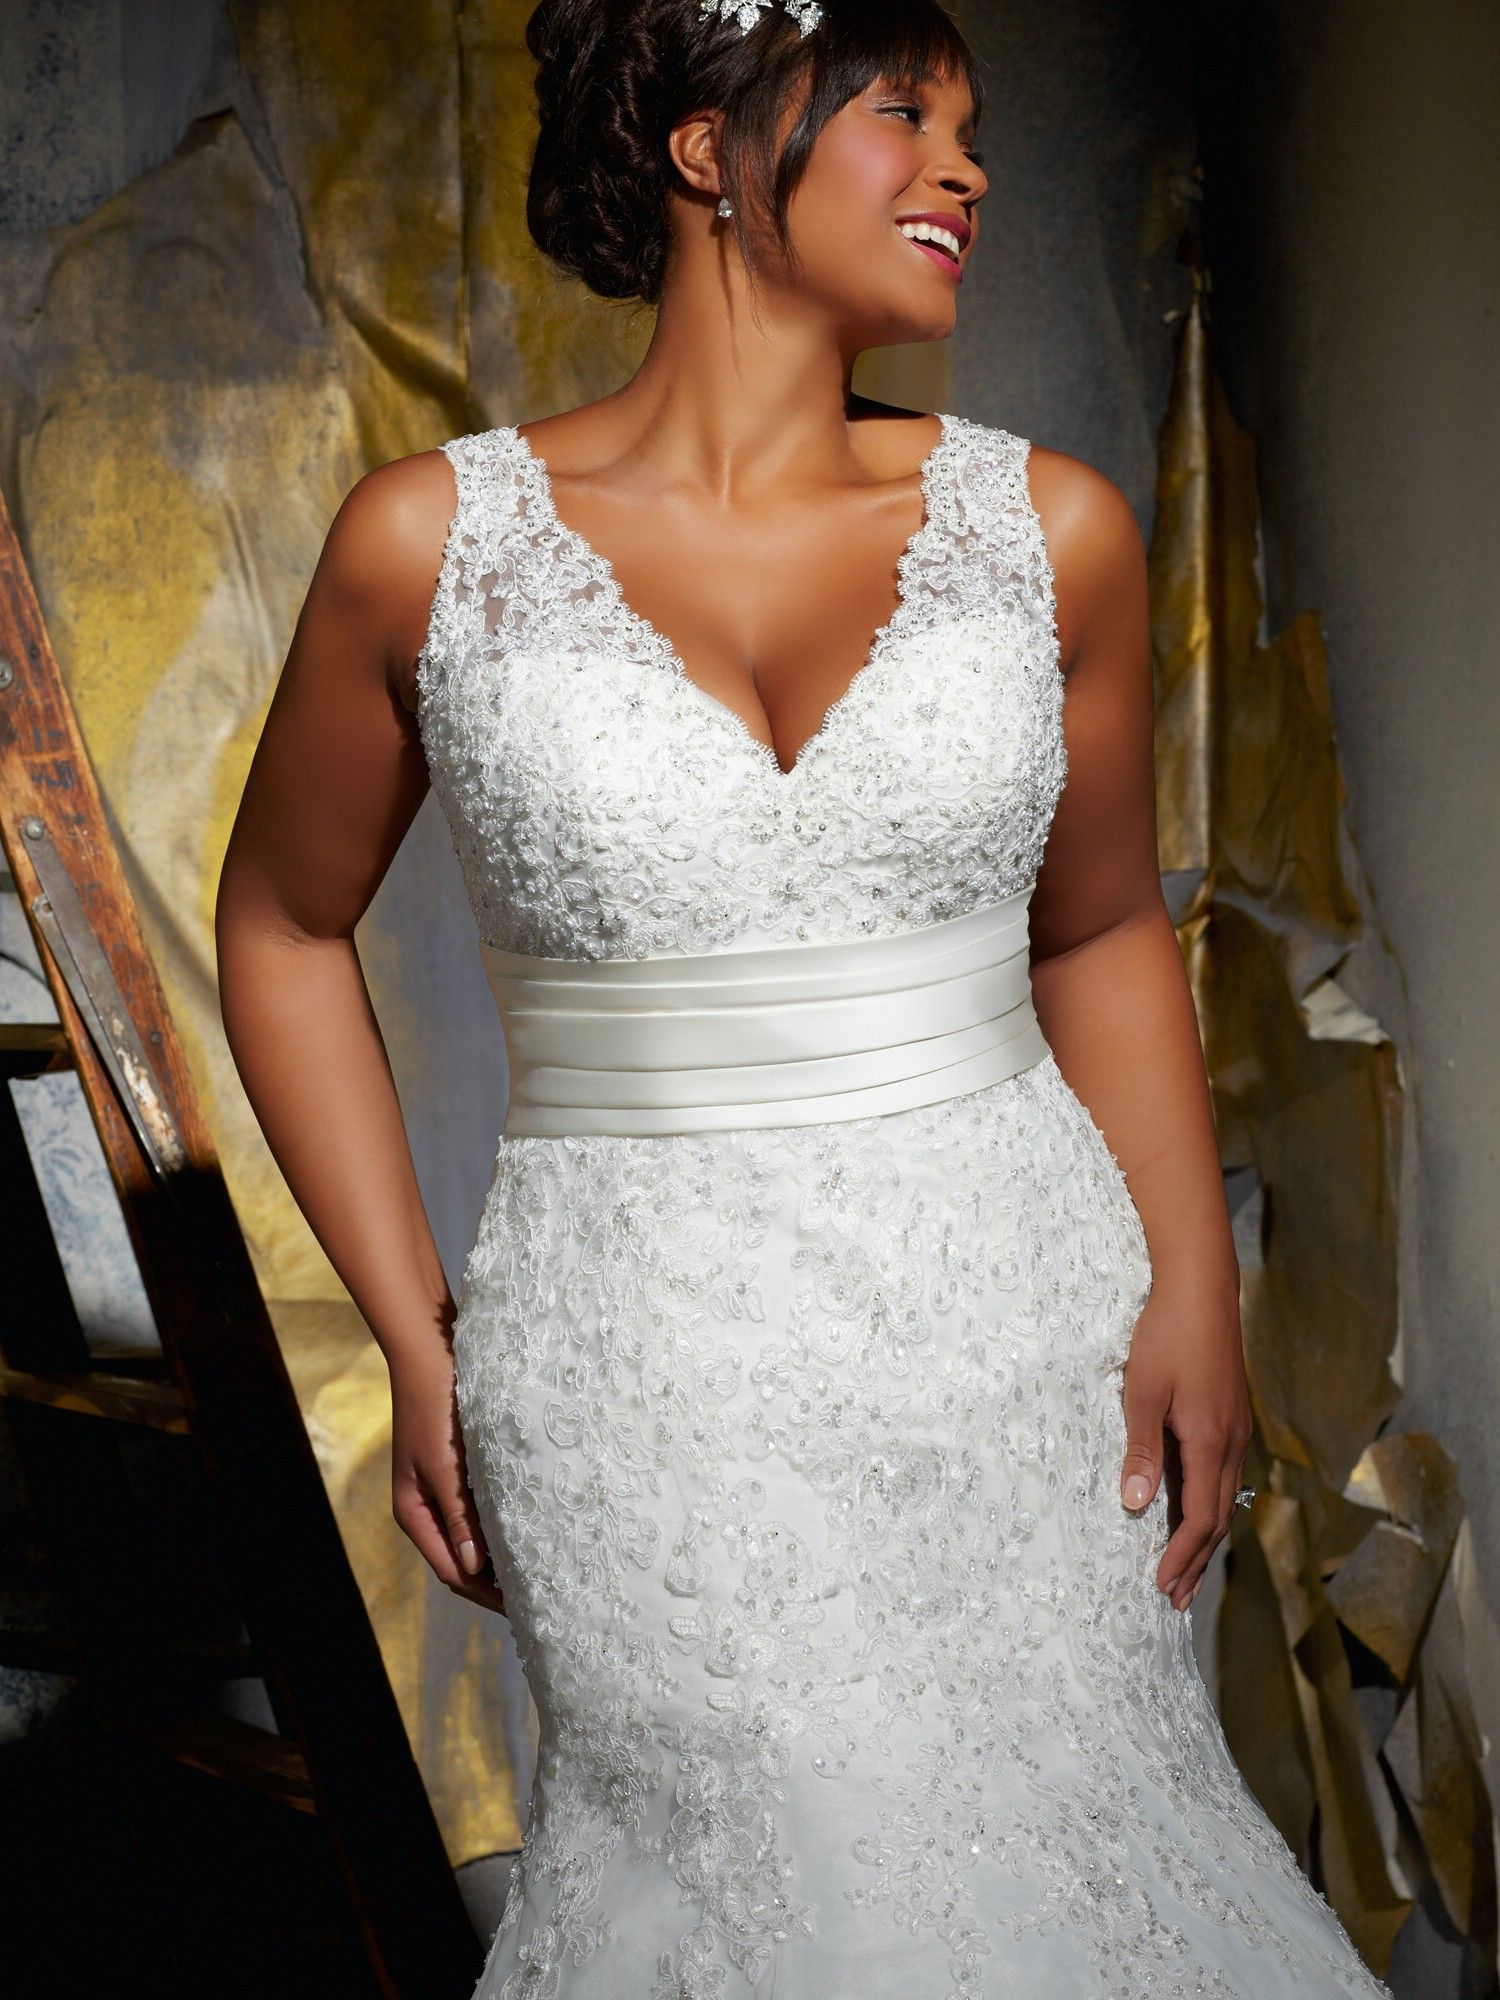 Mermaid plus size wedding dresses  Satin and Lace Mermaid Wedding Dress  Plus size wedding  Pinterest